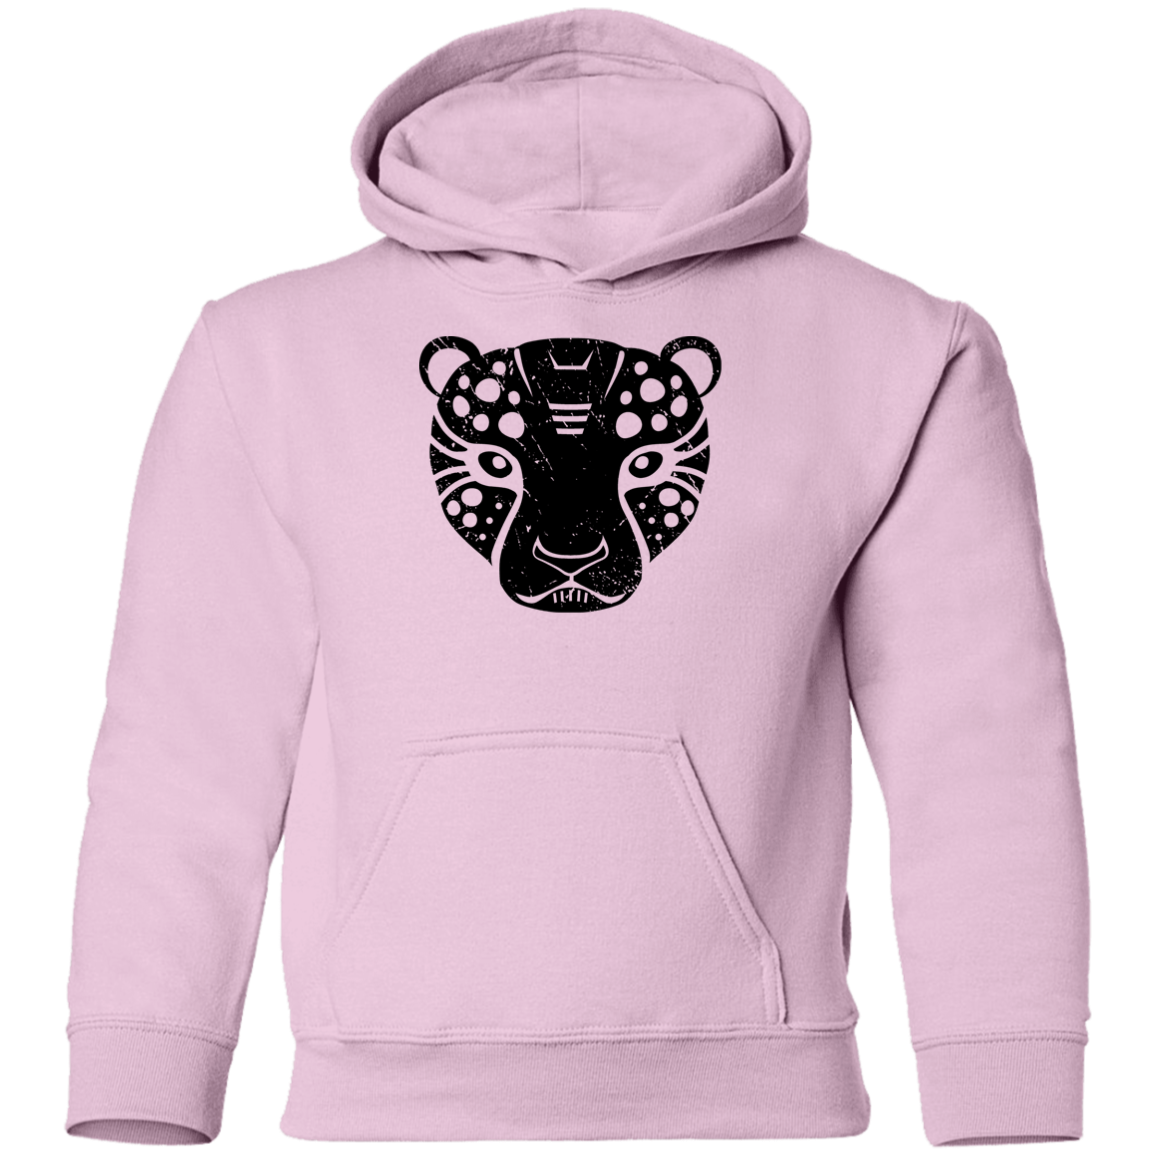 Black Distressed Emblem Hoodies for Kids (Cheetah/Poise)